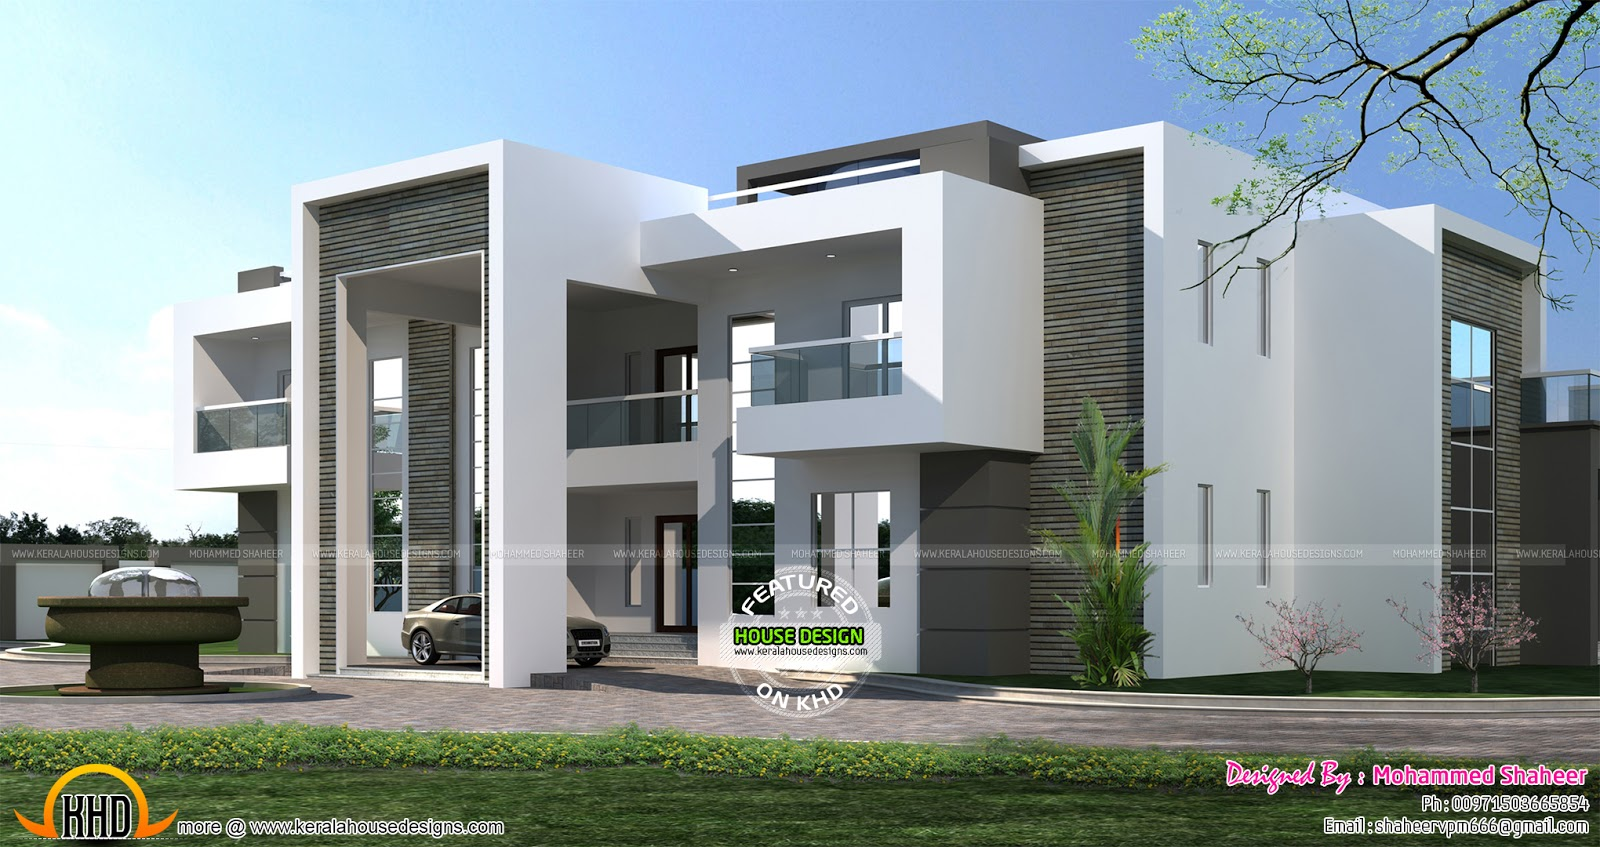 Flat roof arabian house plan kerala home design and for House building design ideas